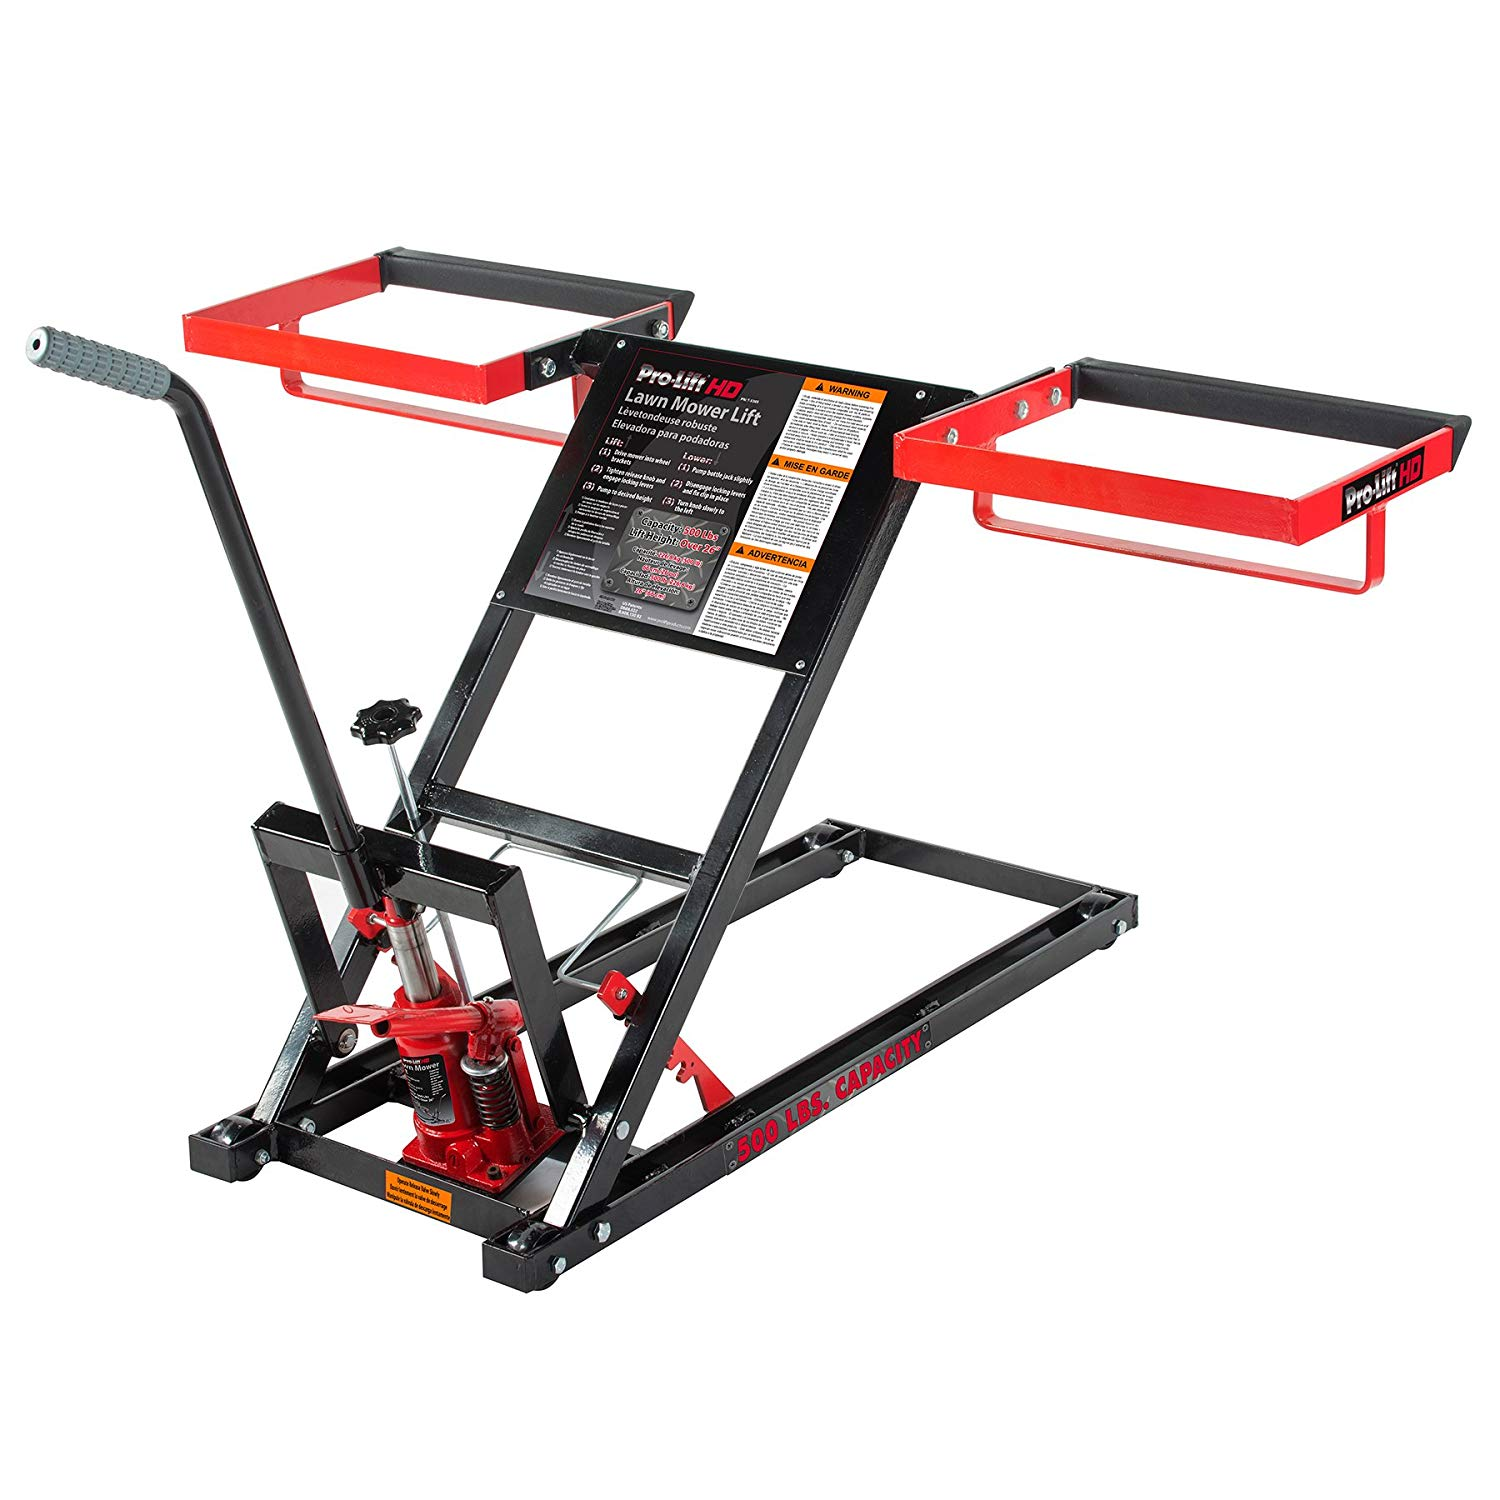 Top 10 Best Lawn Mower Lifts in 2019 Reviews - Top Best